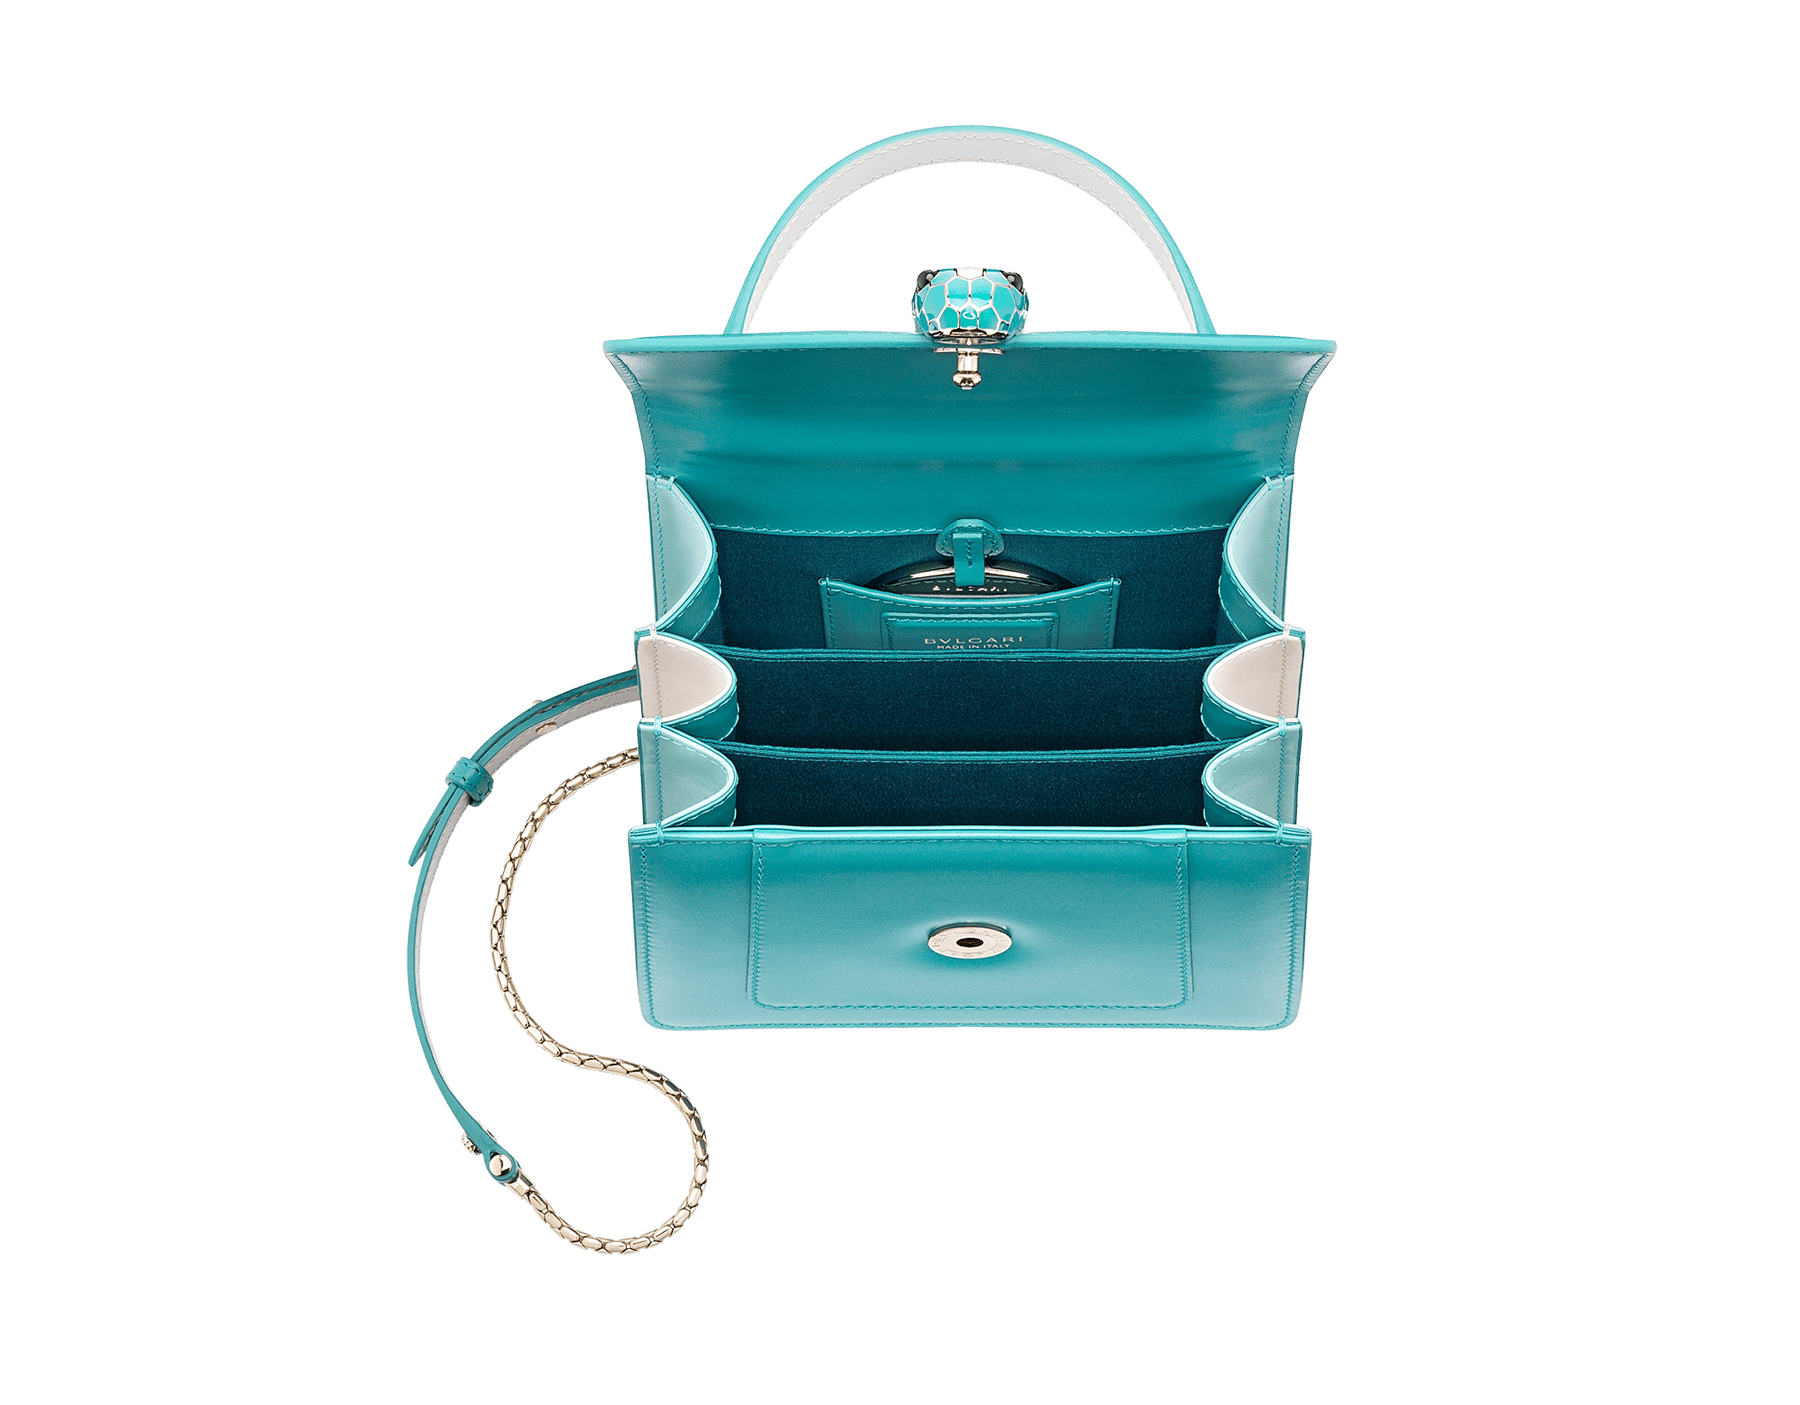 """Serpenti Forever "" crossbody bag in arctic jade calf leather body and glacier turquoise and white agate calf leather sides. Iconic snakehead closure in light gold plated brass enriched with arctic jade and white agate enamel and black onyx eyes. 288772 image 4"